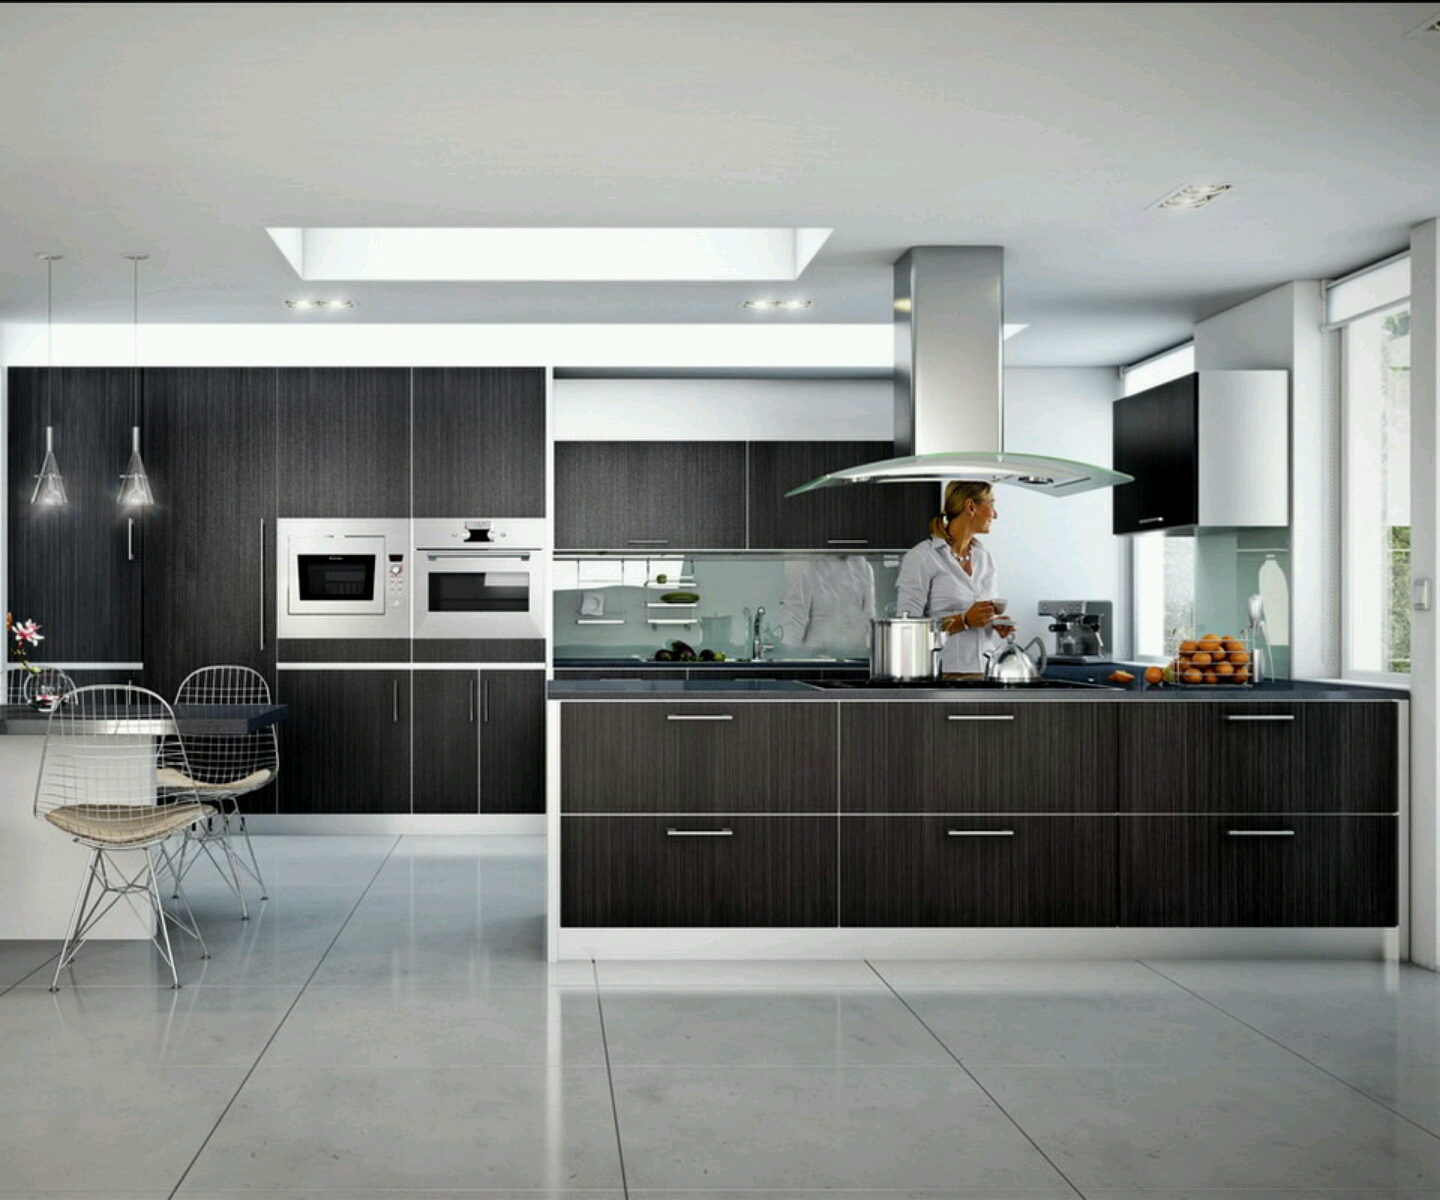 Rumah rumah minimalis modern homes ultra modern kitchen for New kitchen remodel ideas